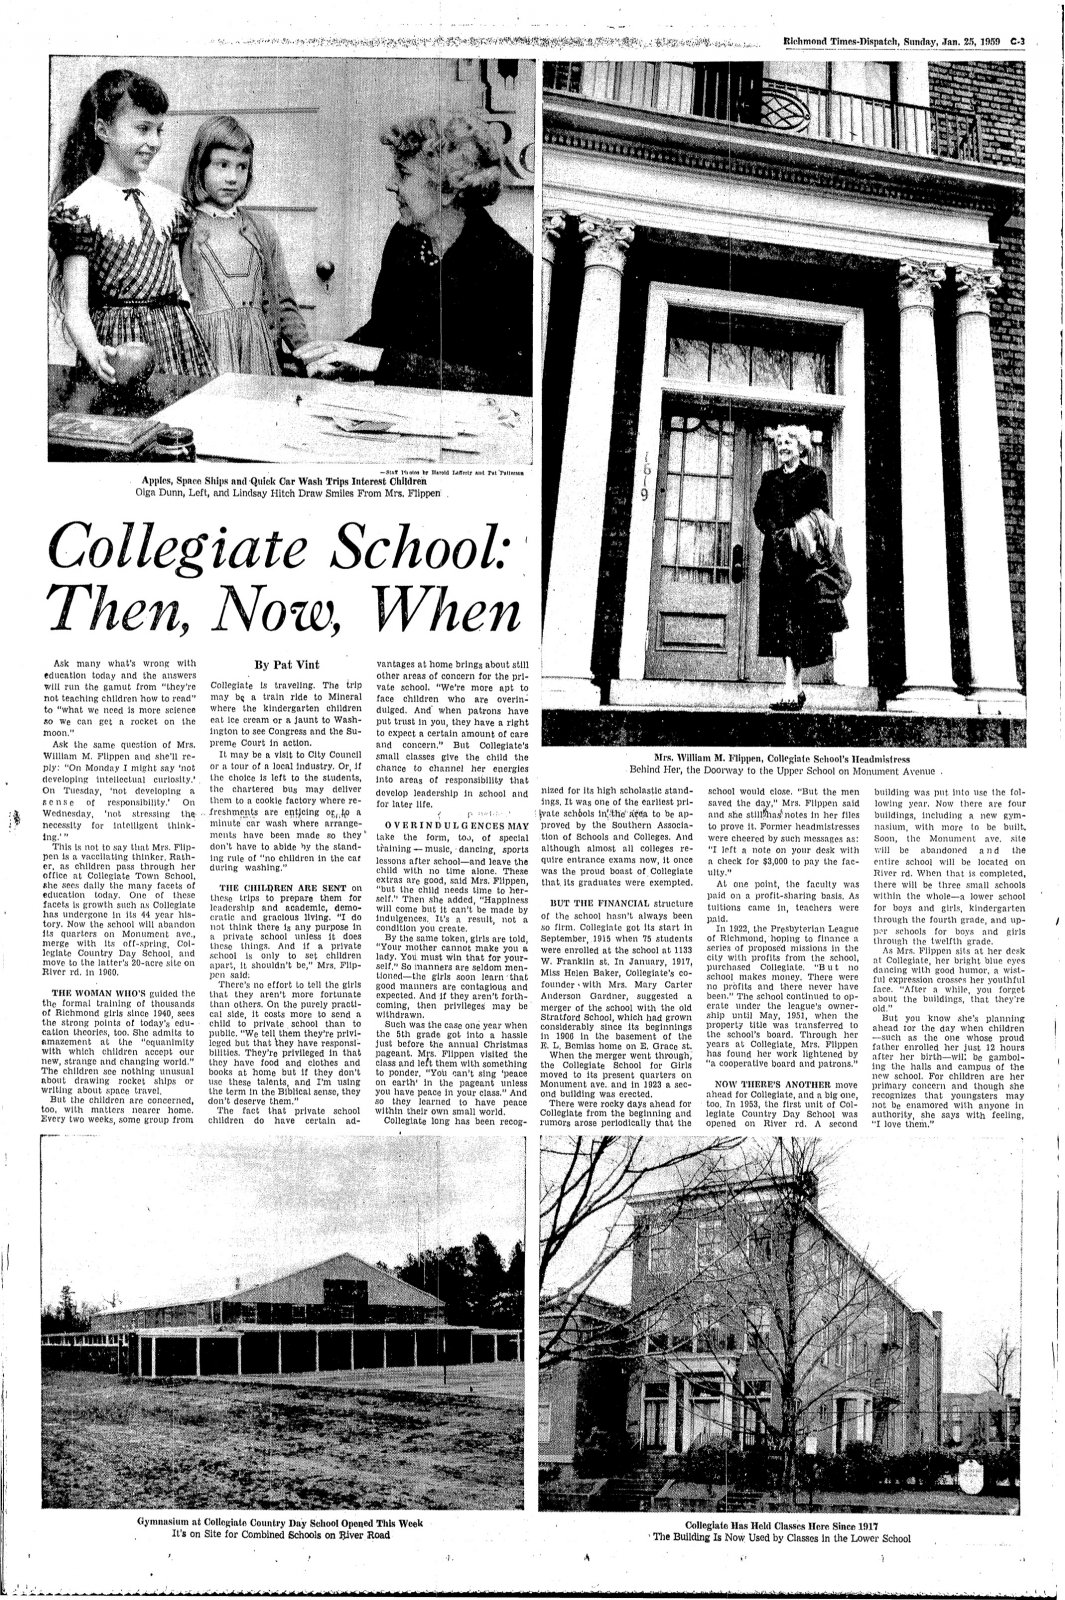 """Collegiate School: Then, Now, When\"" in the Richmond Times-Dispatch, January 25, 1959"